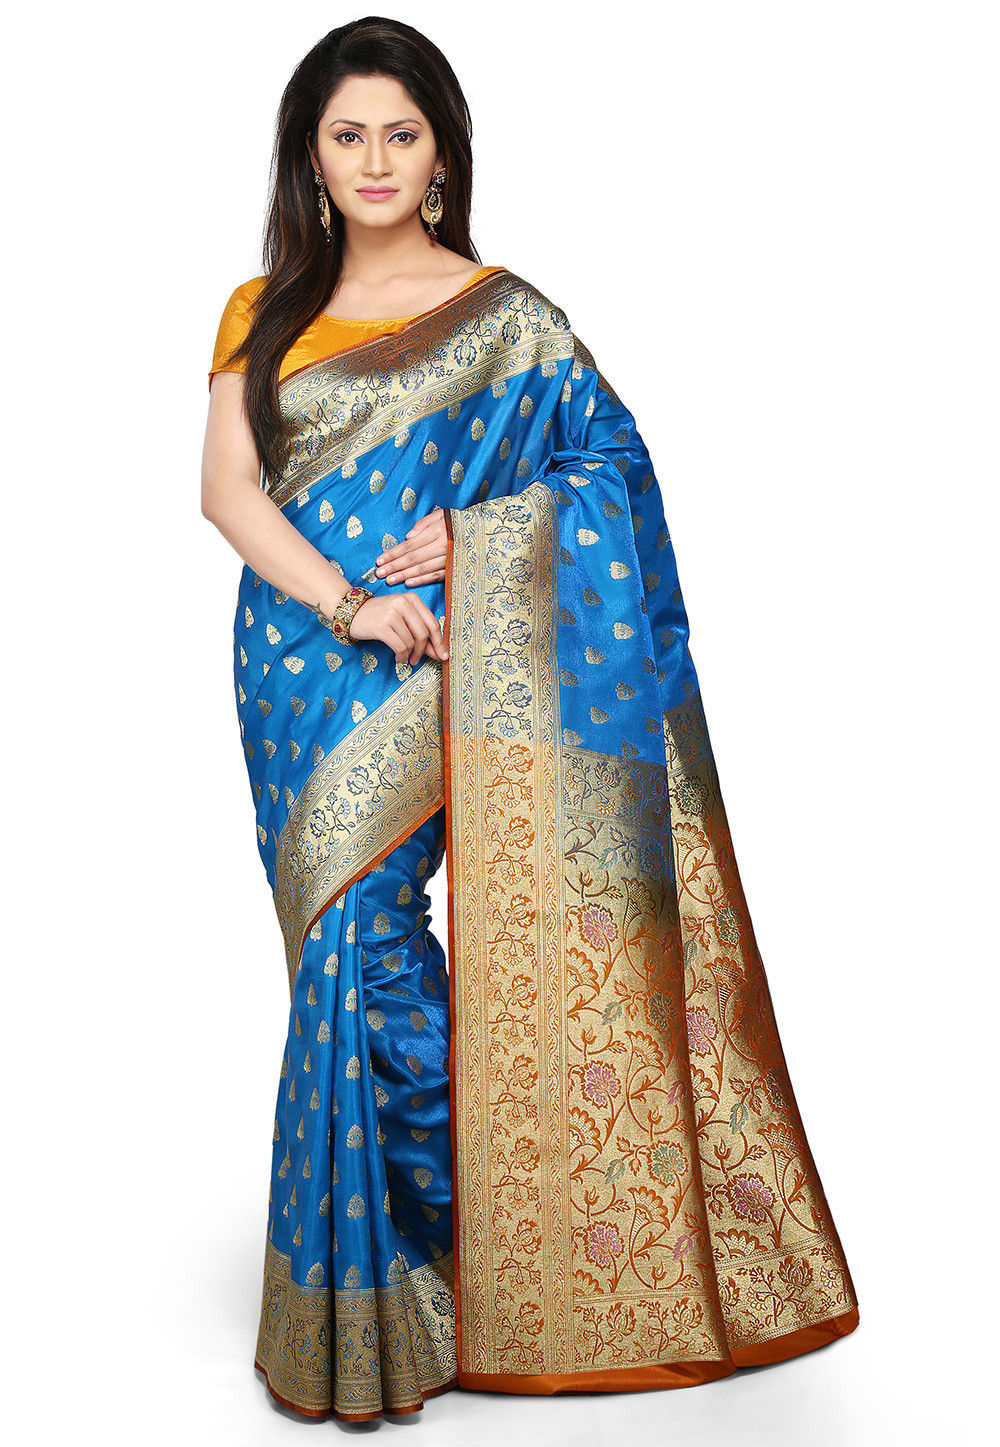 Woven Banarasi Saree in Blue